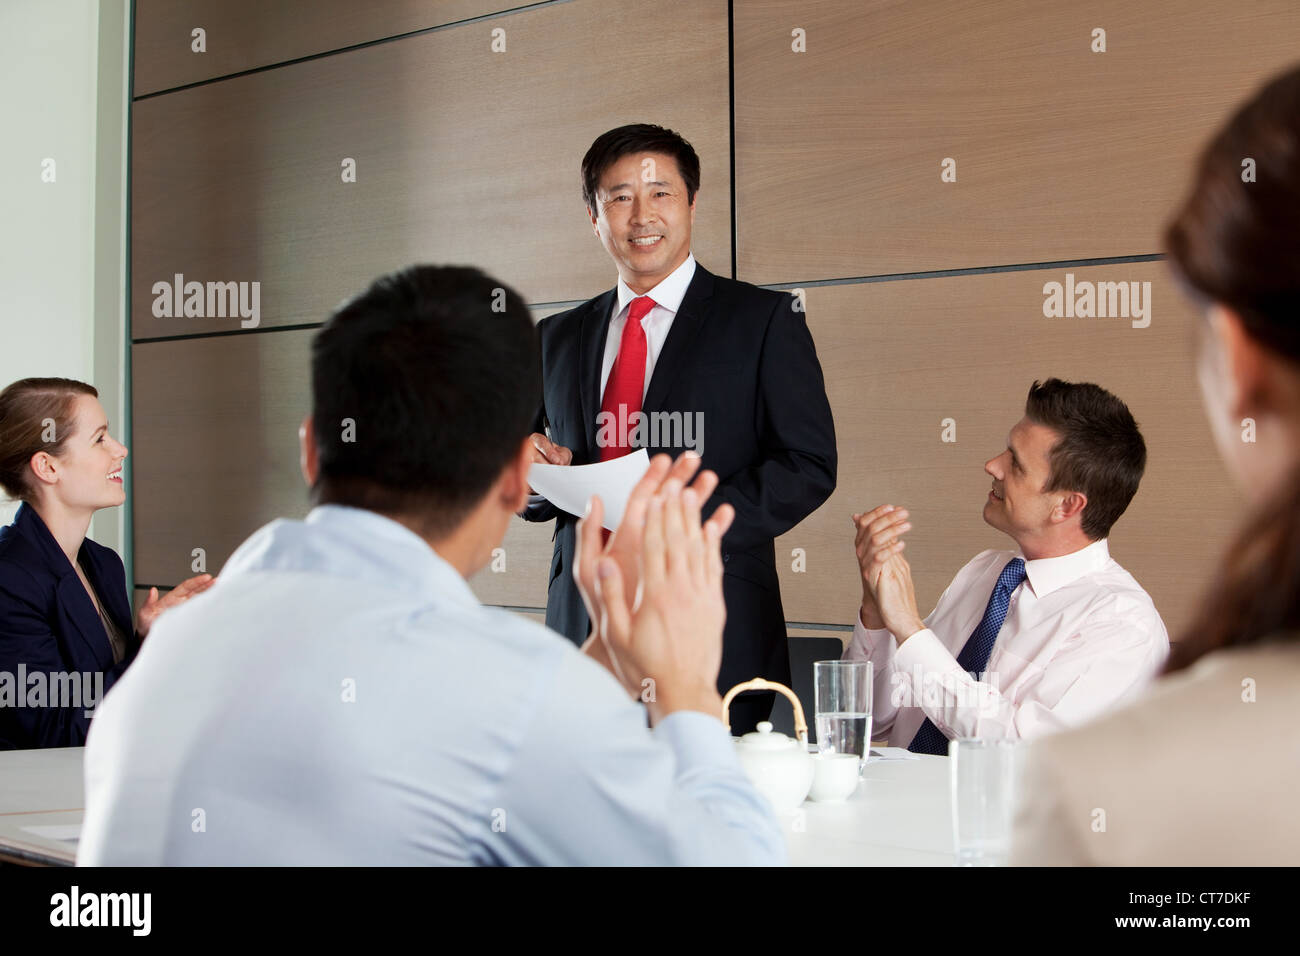 Multi racial business meeting - Stock Image